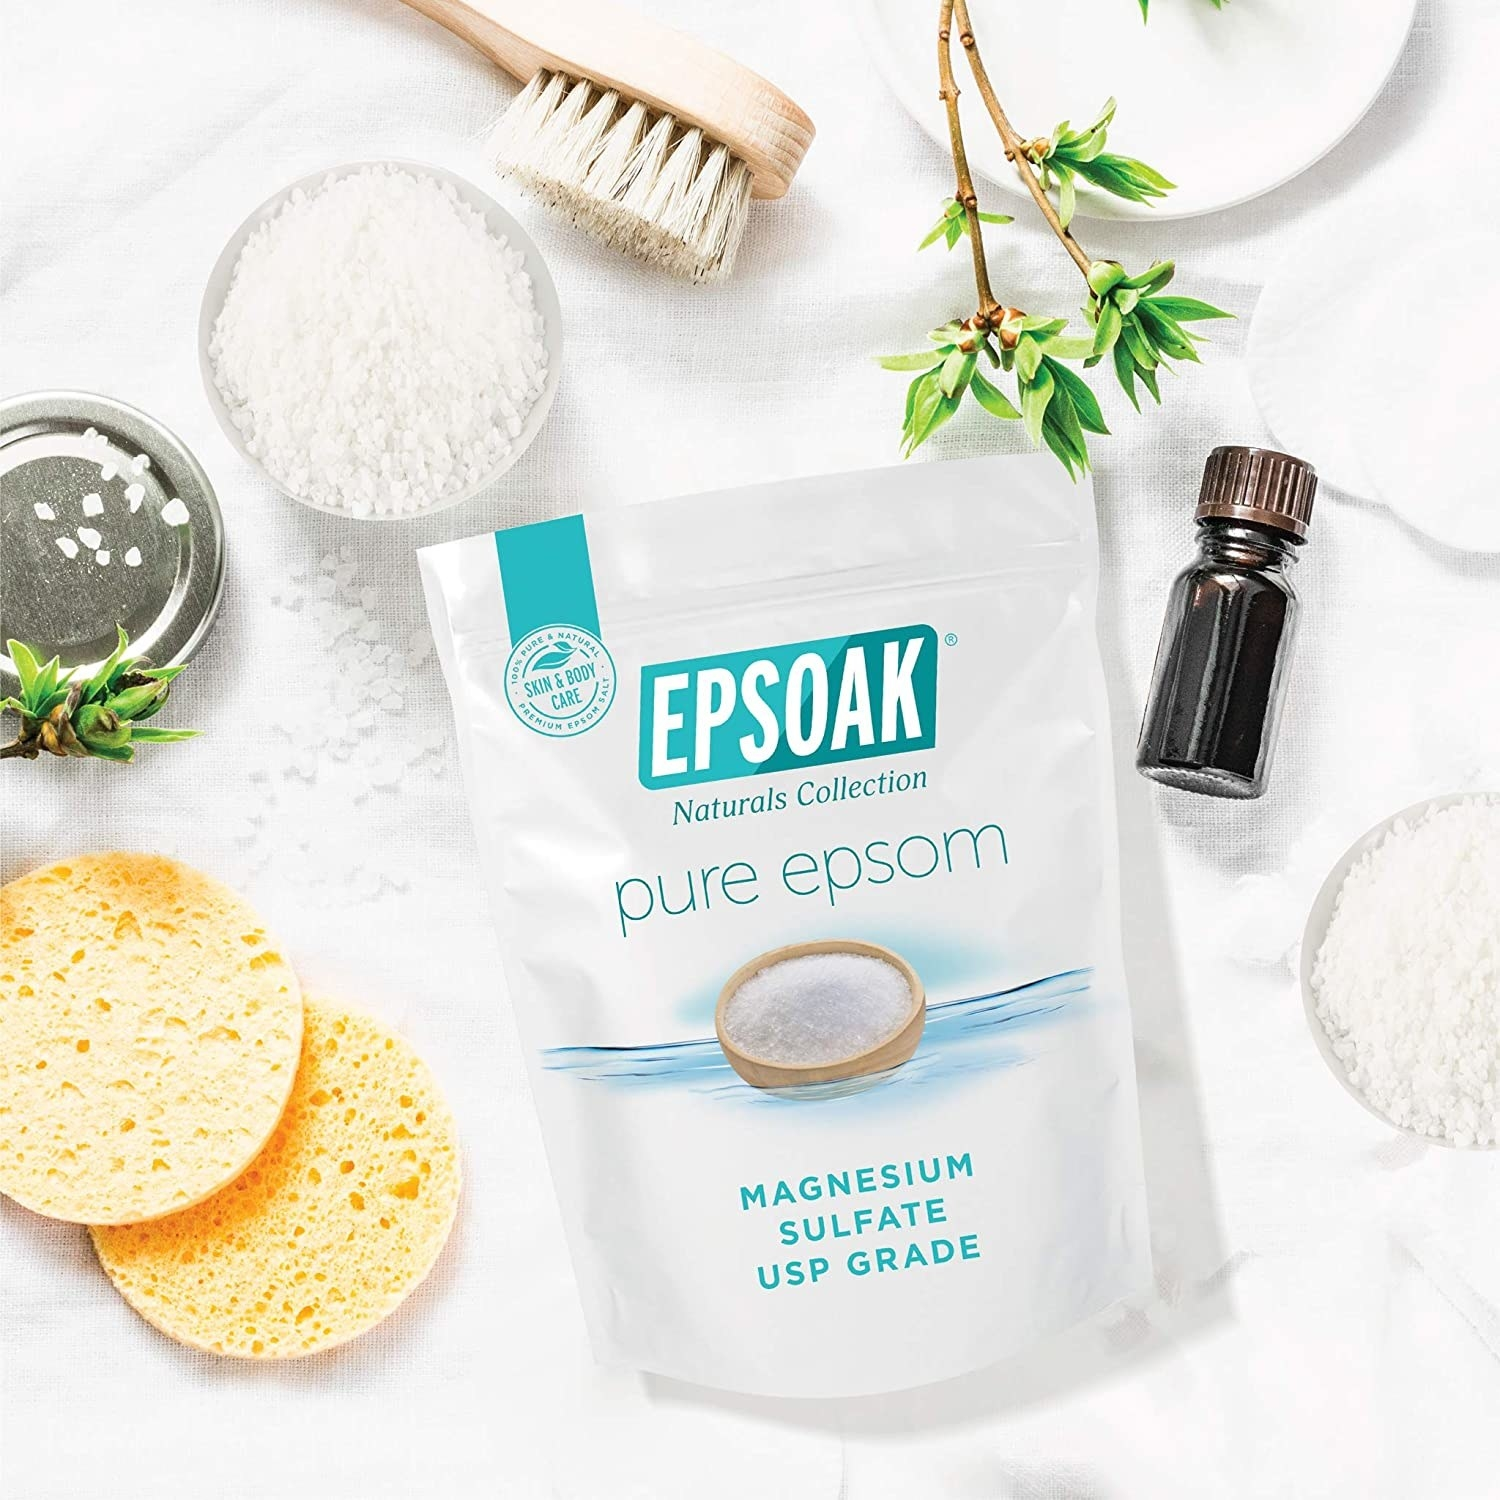 A flatlay of the epsom salts next to sponges and body brushes